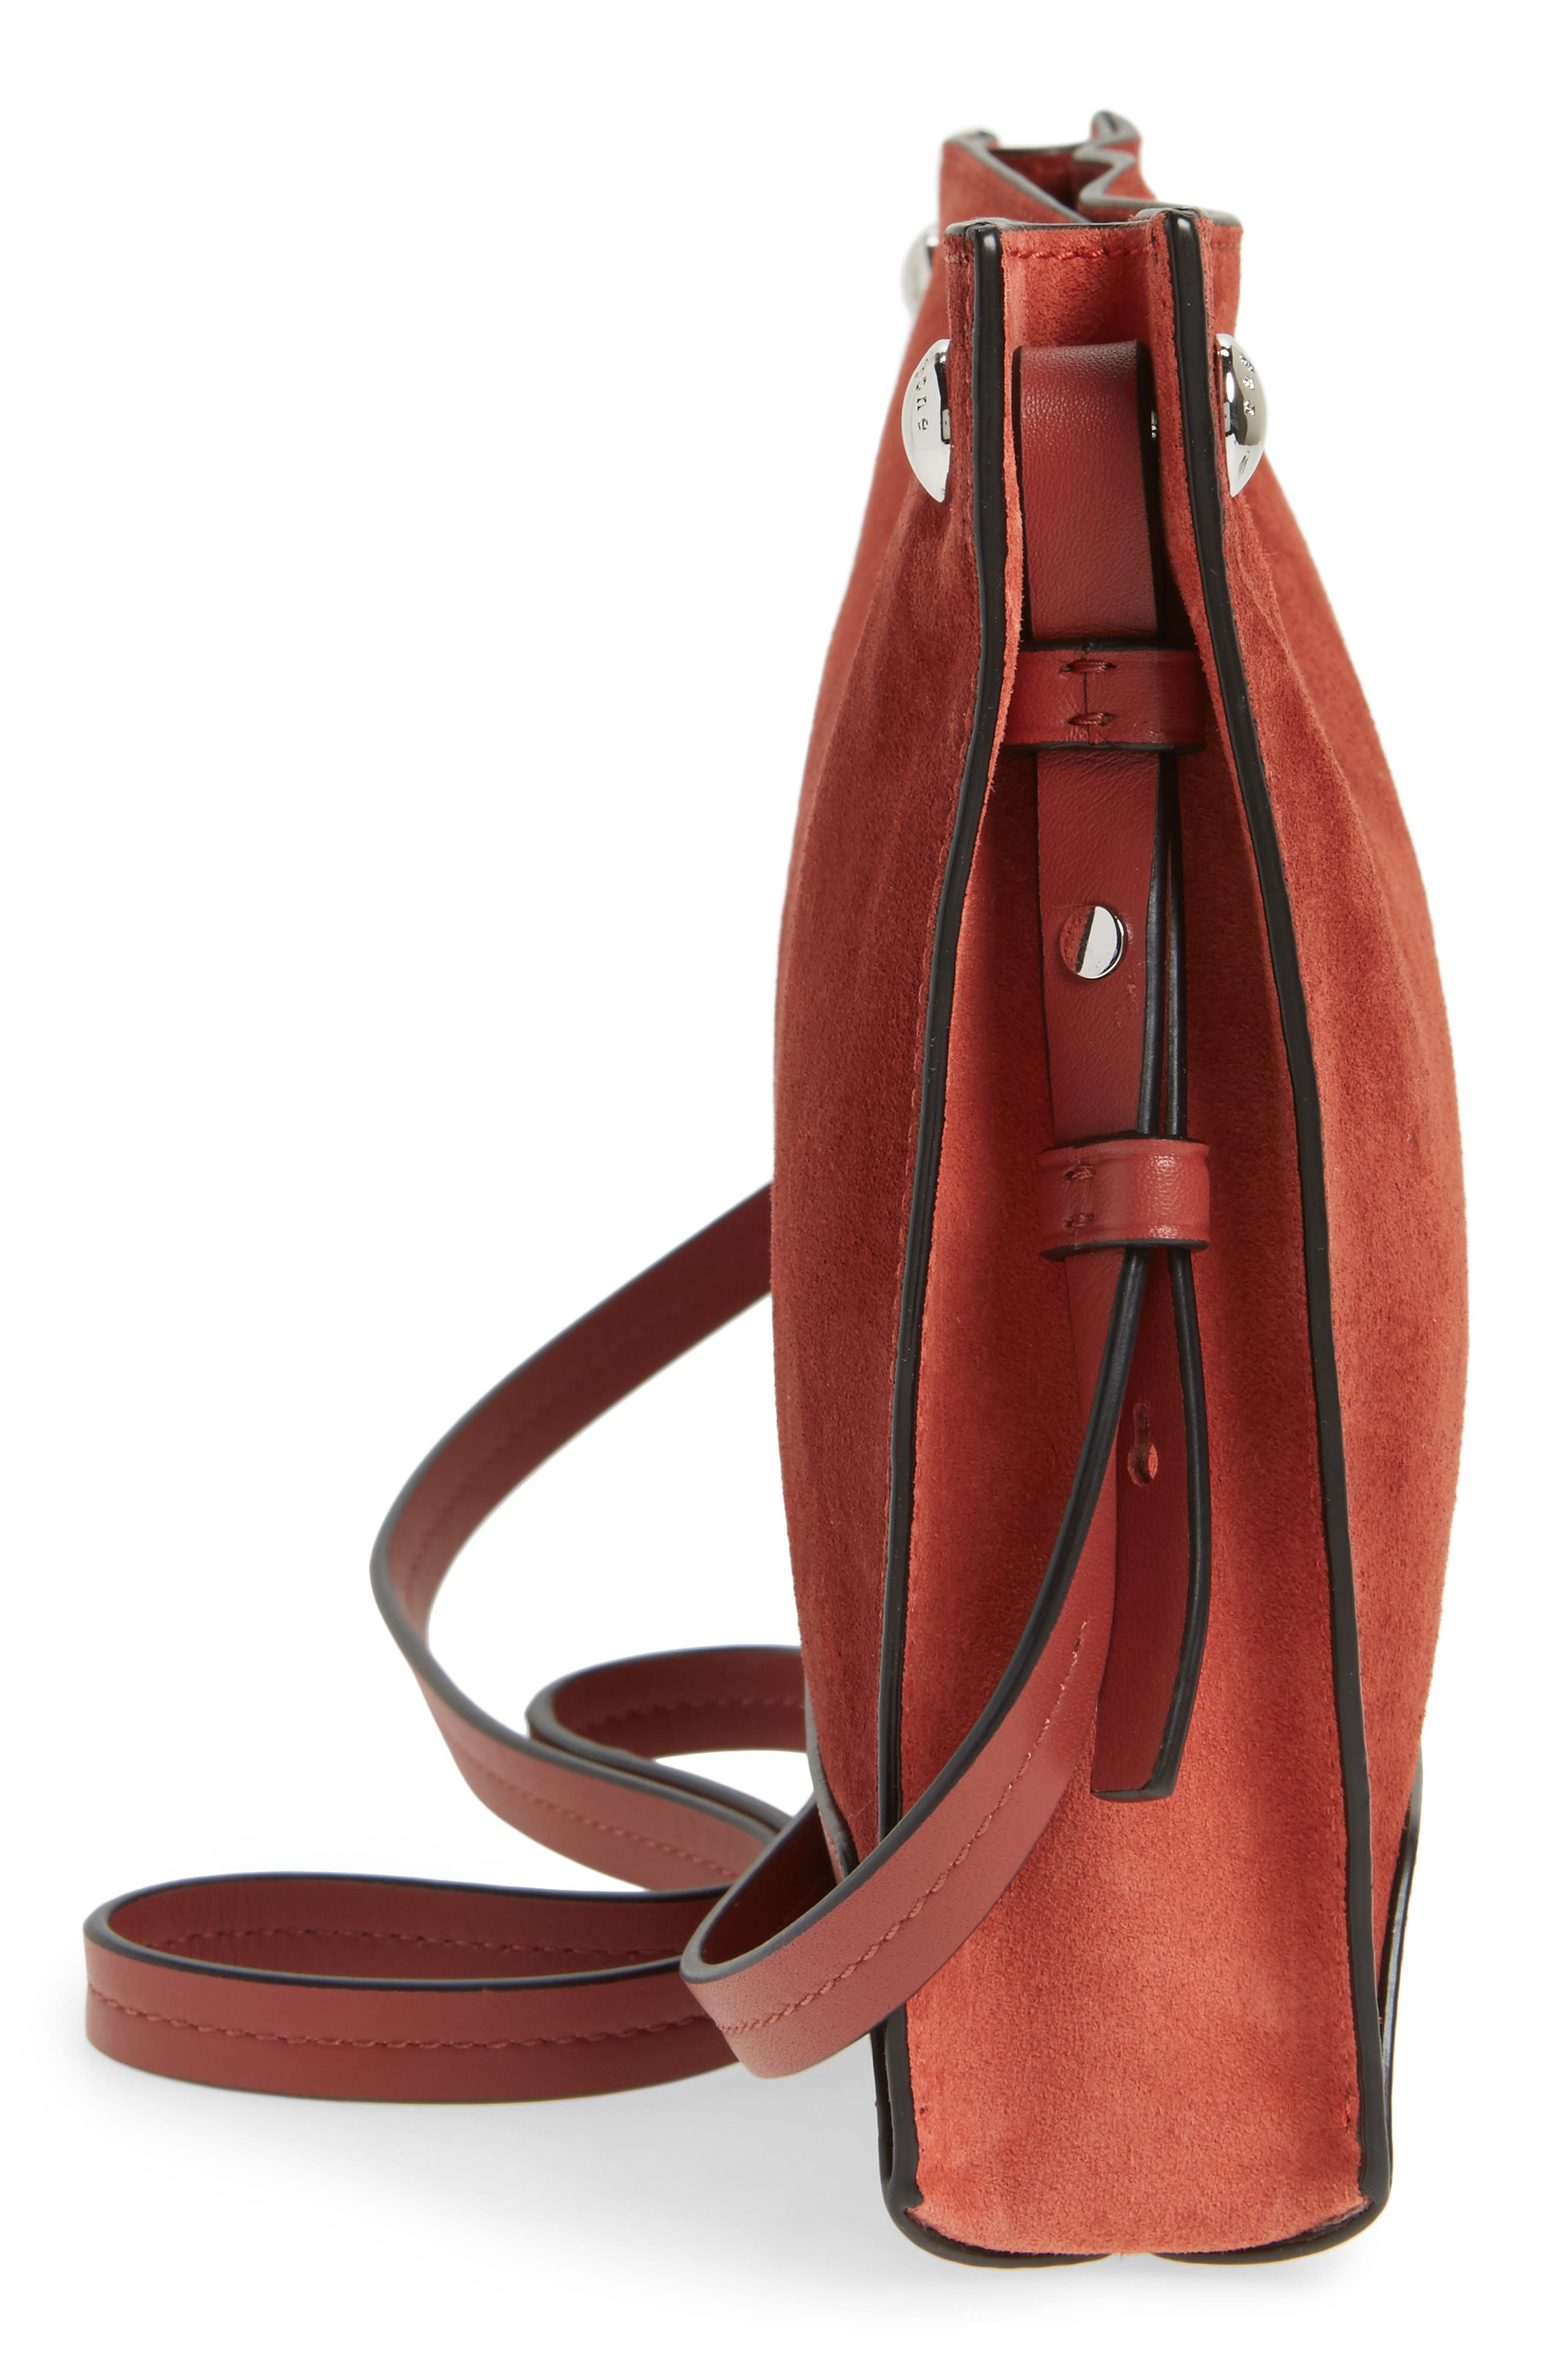 Compass Suede Crossbody Bag,                             Alternate thumbnail 5, color,                             629